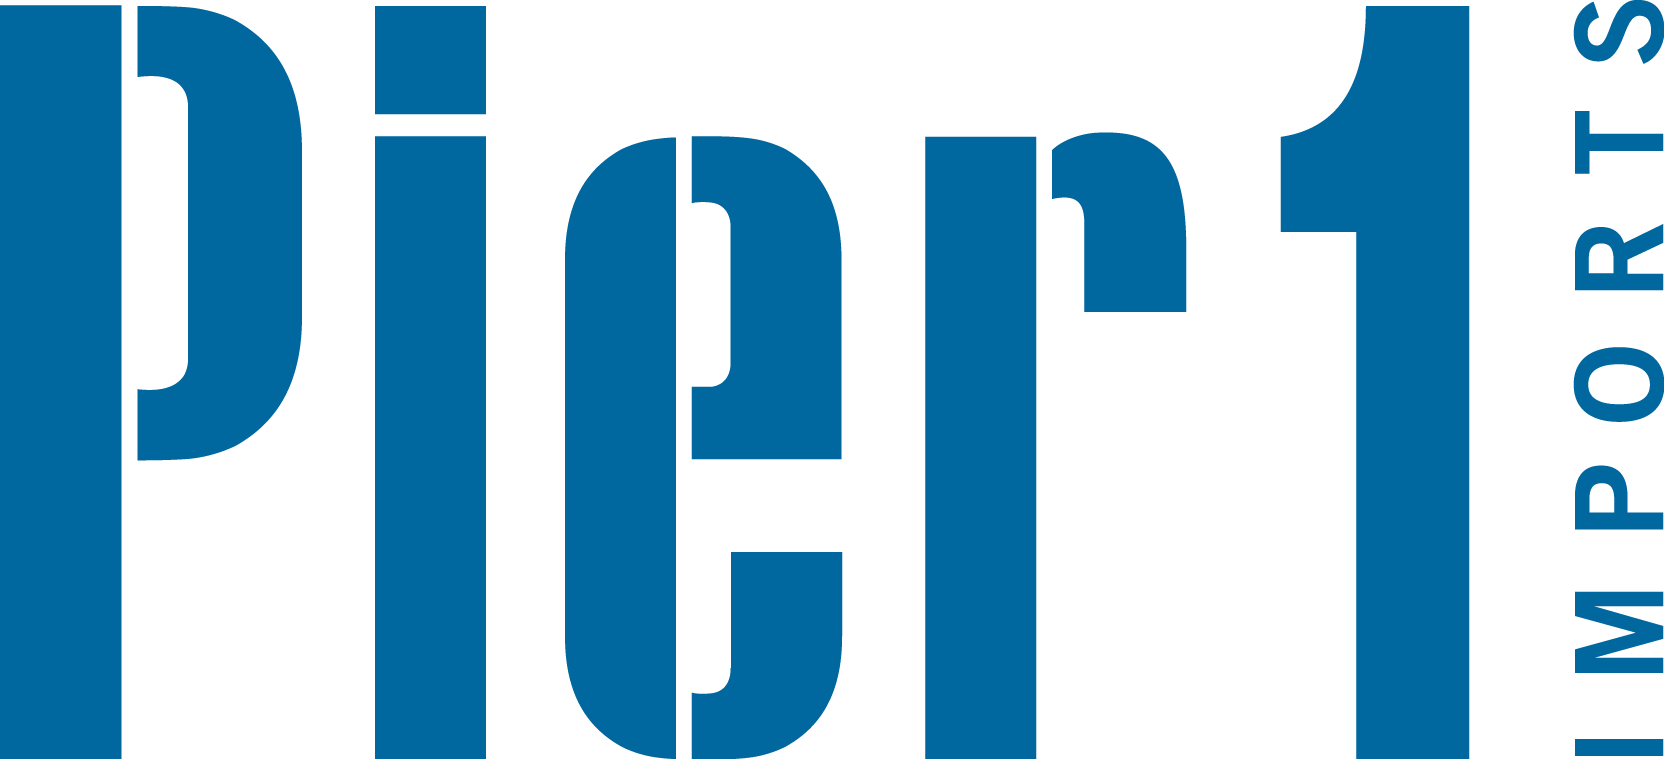 Pier 1 Imports Logo png